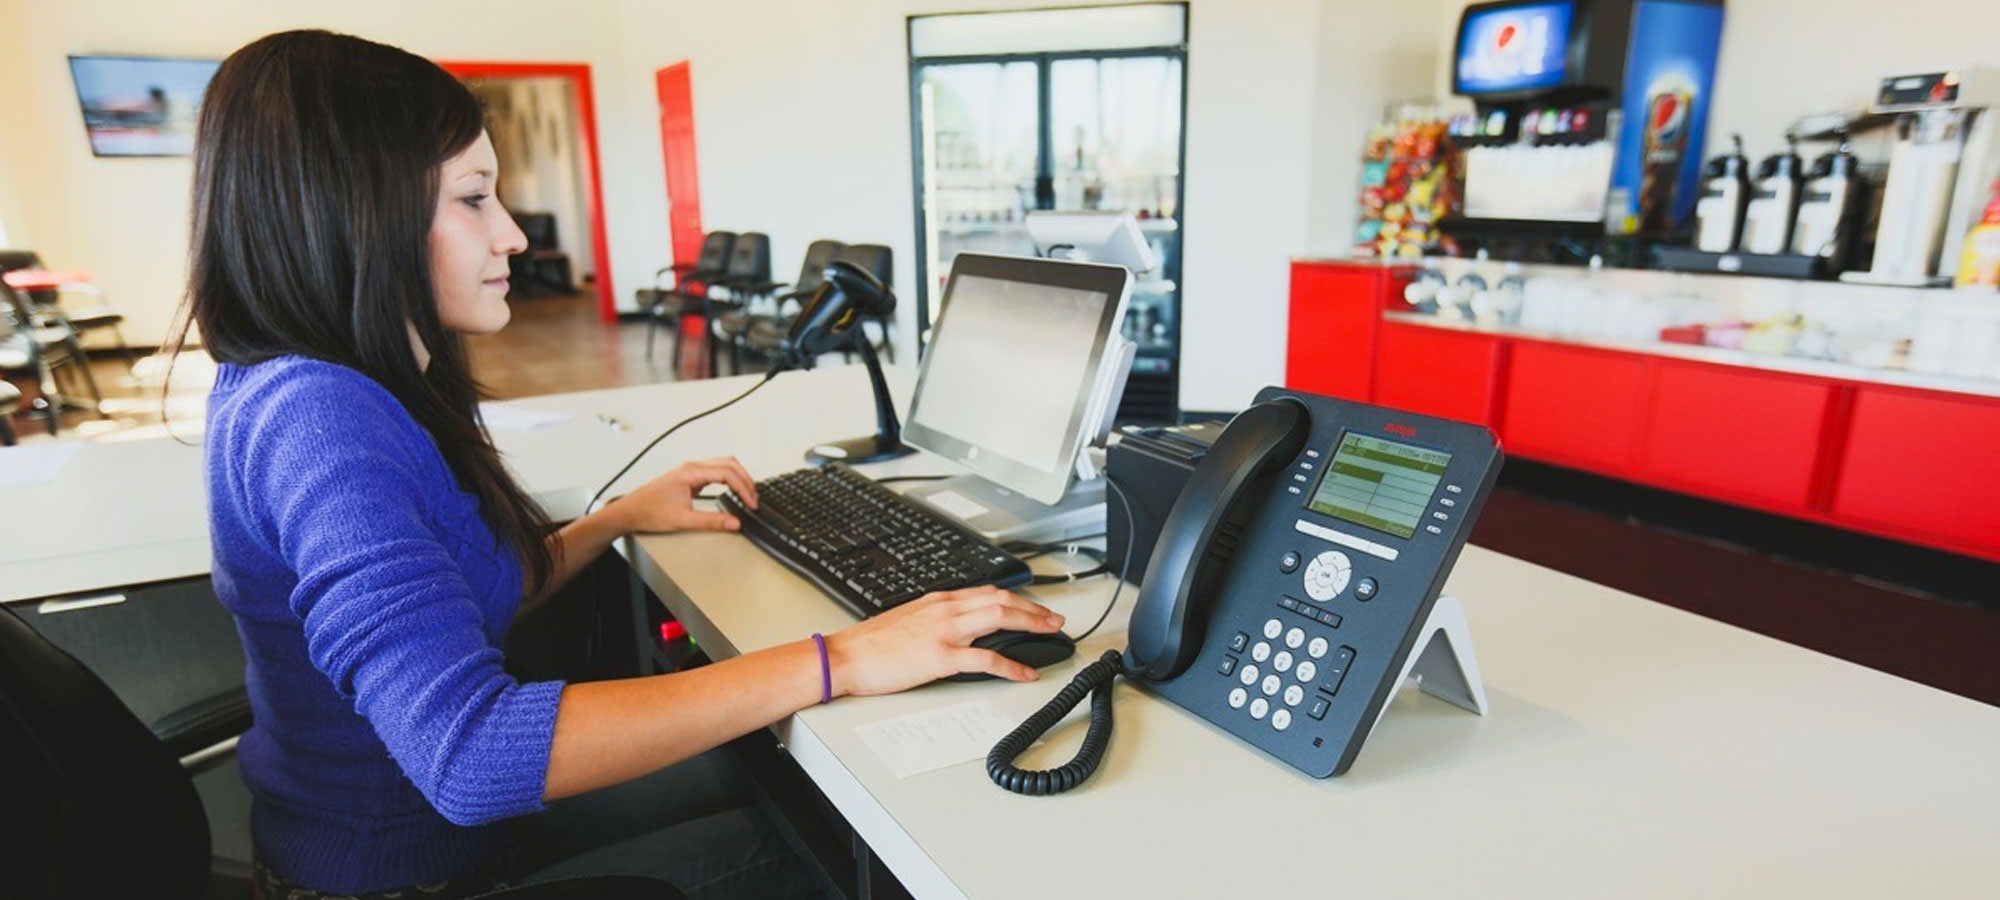 Secure Your Business with Access Control Systems